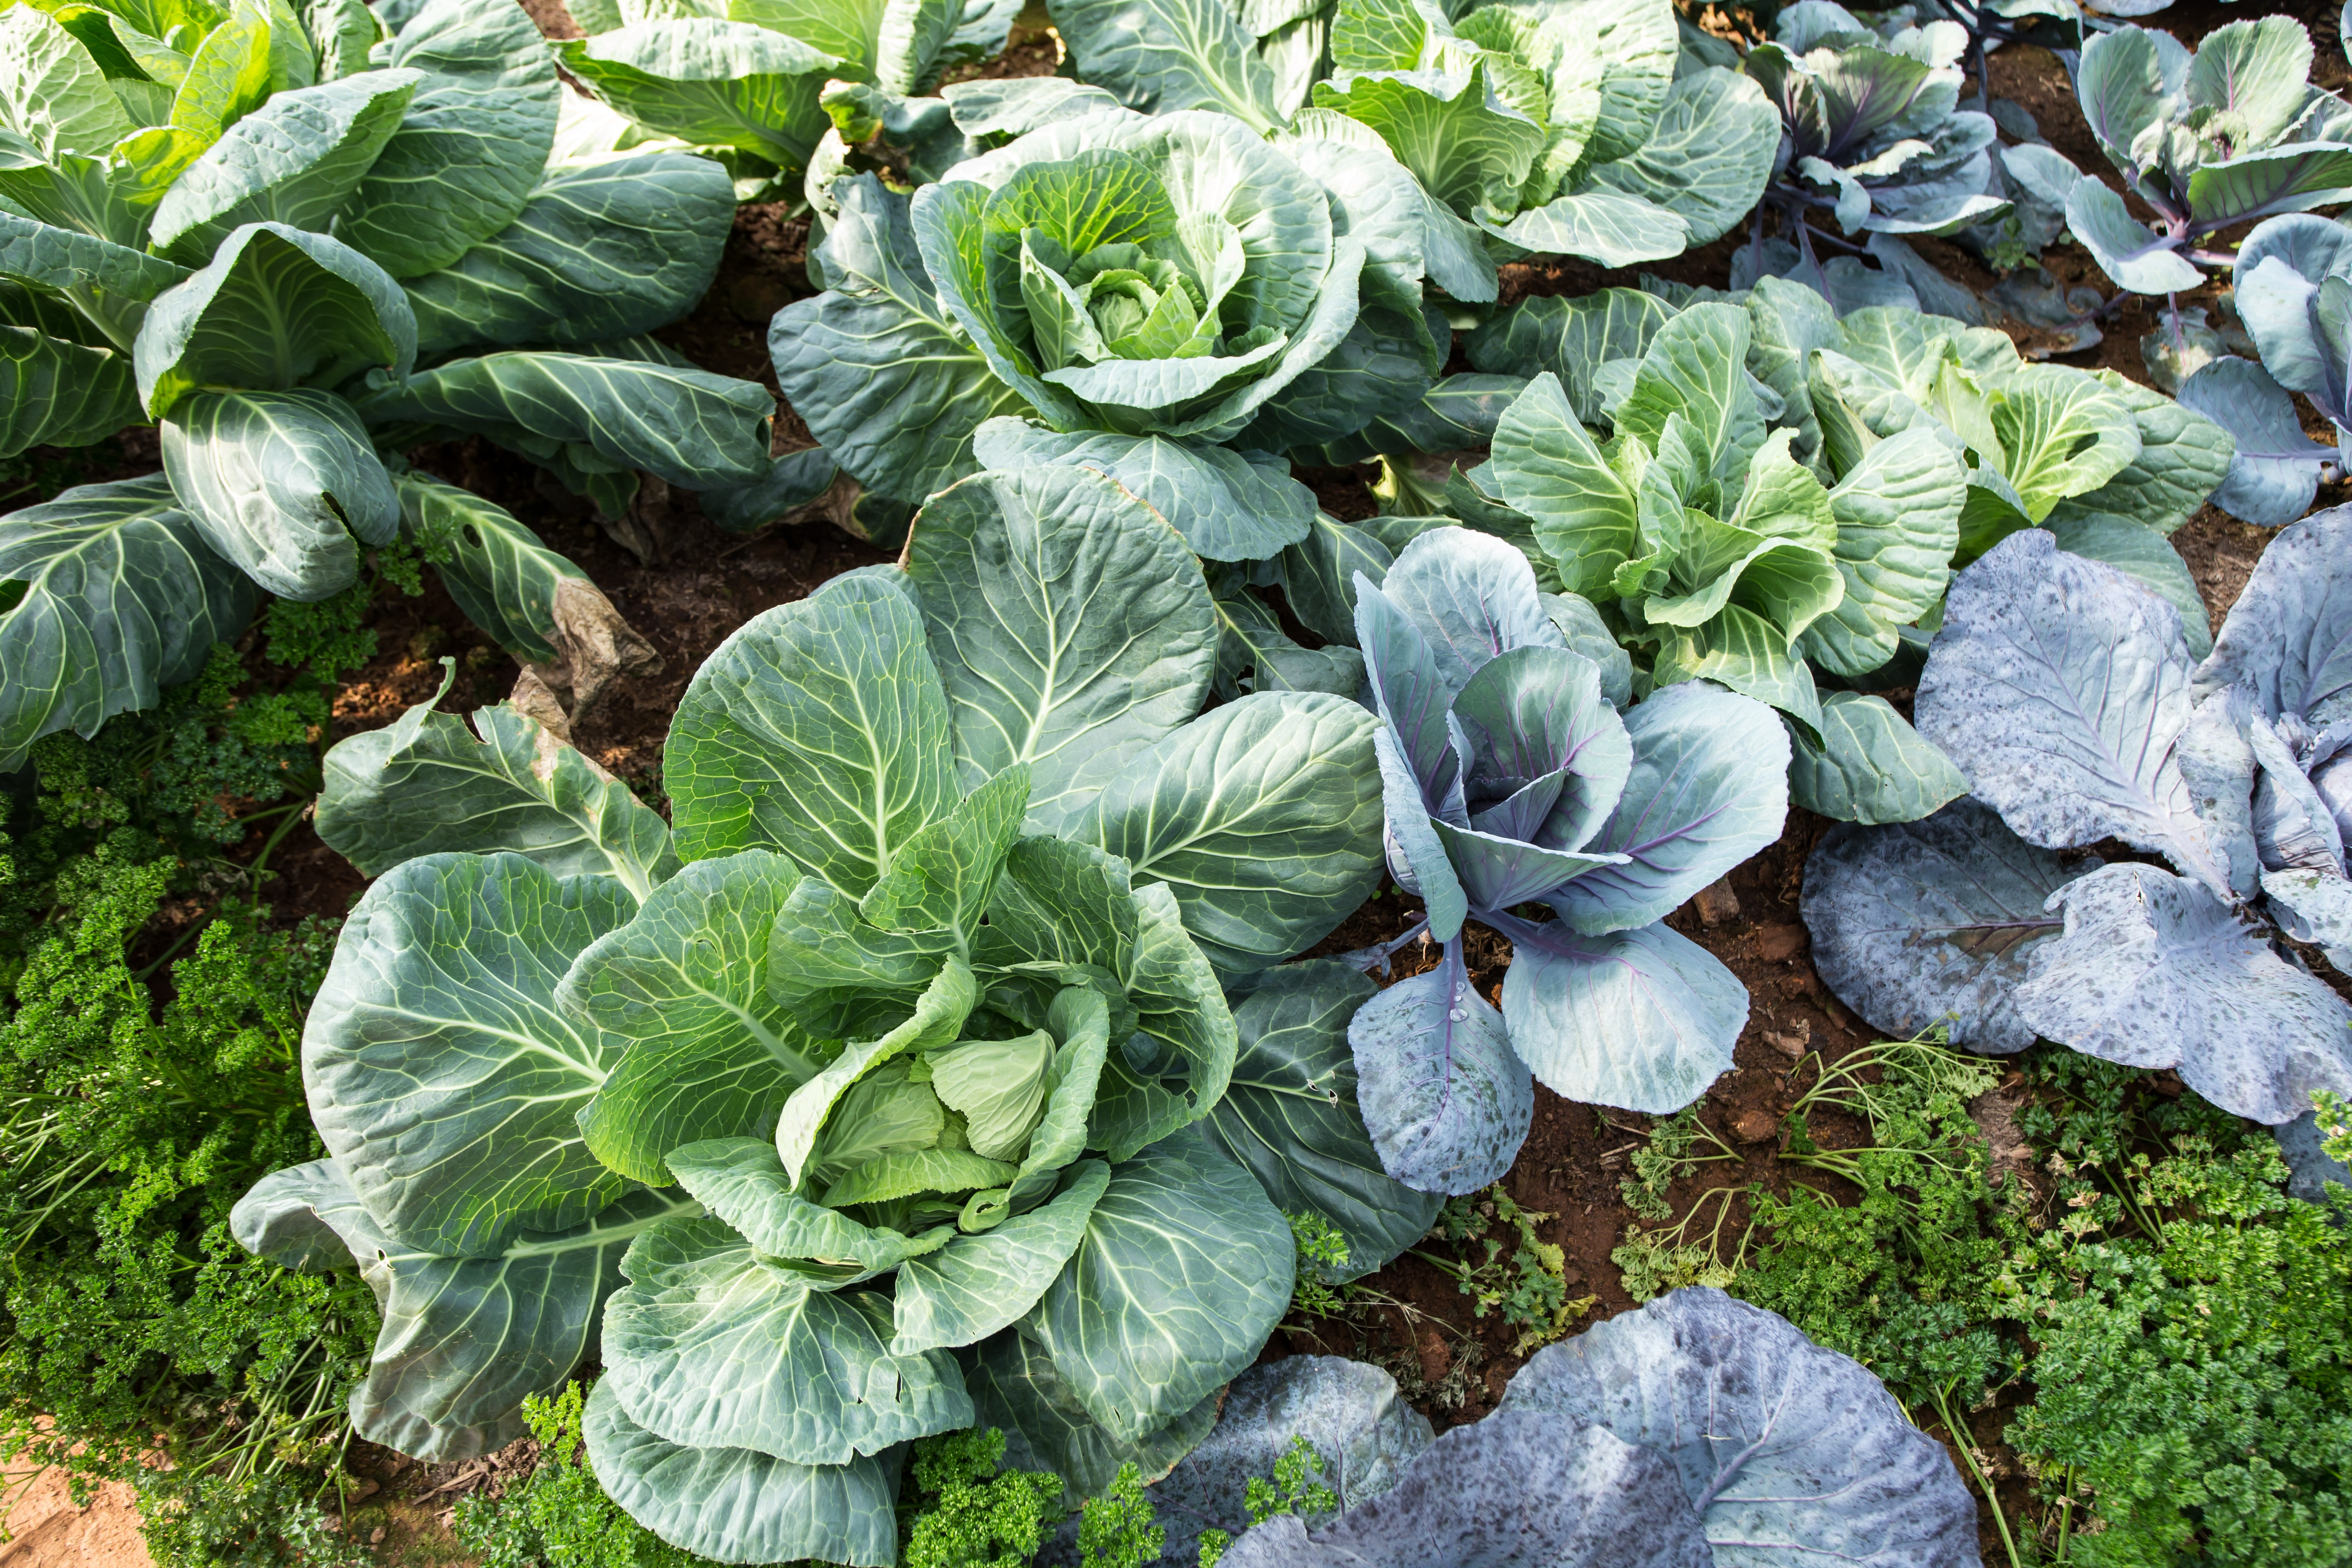 cabbage garden, fresh cabbage and parsley grow in farm, Thailand